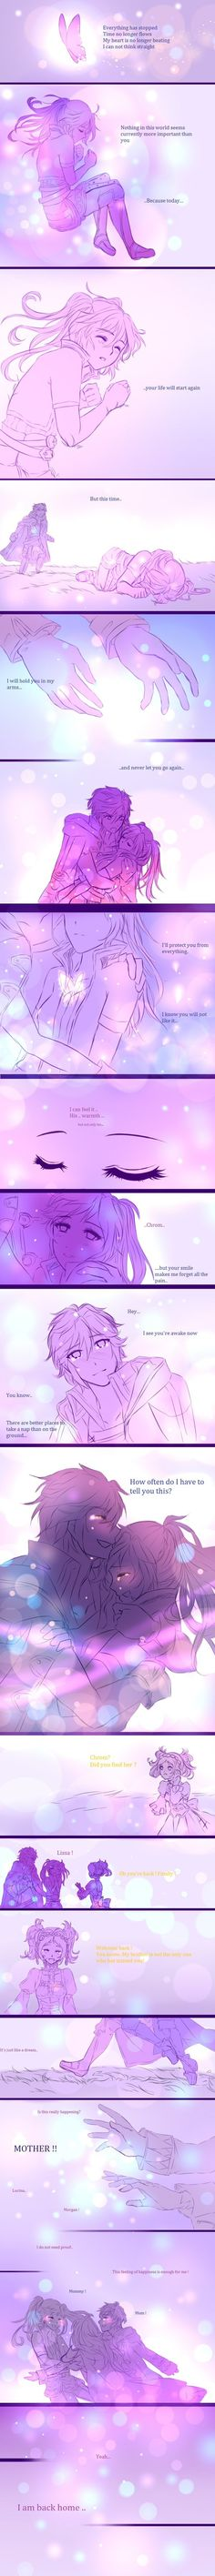 Fire Emblem Awakening: The End Part 6 by OwlLisa.deviantart.com on @DeviantArt